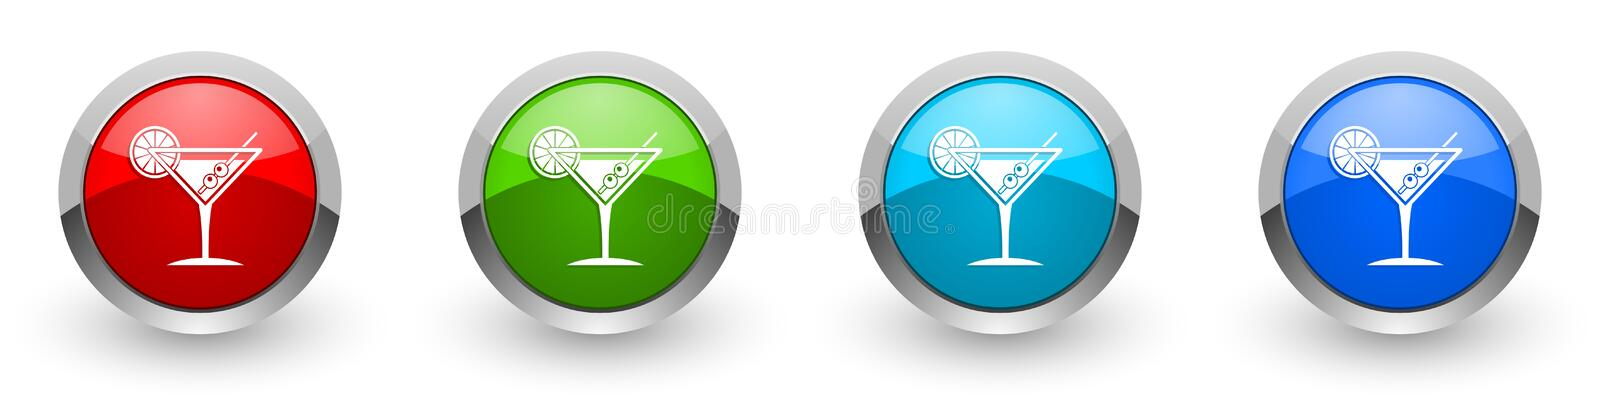 Tropical drink, alcohol, bar, martini in glass concept set of modern design buttons for web, internet and mobile applications in. Four colors options isolated stock photography